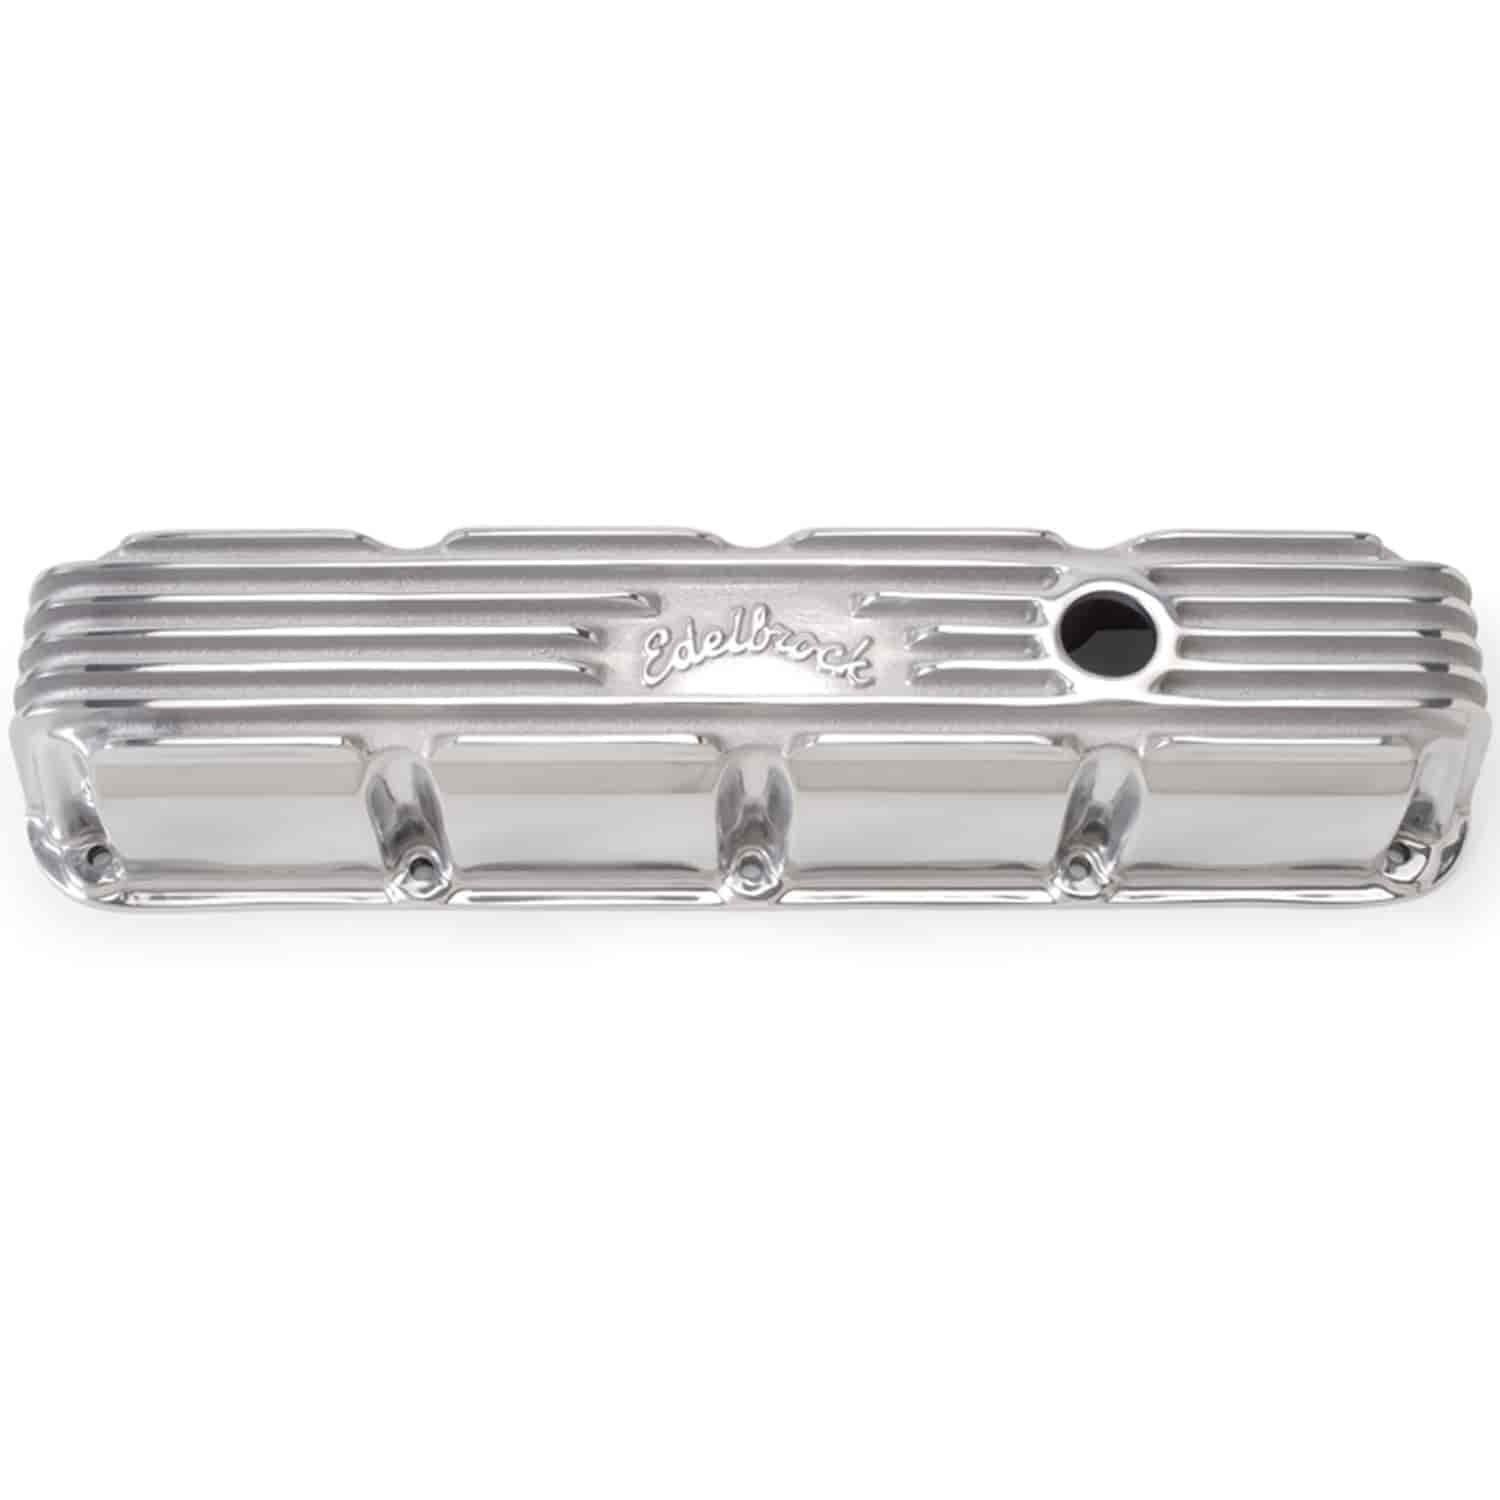 Edelbrock 4177 - Edelbrock Classic Series Valve Covers & Air Cleaners